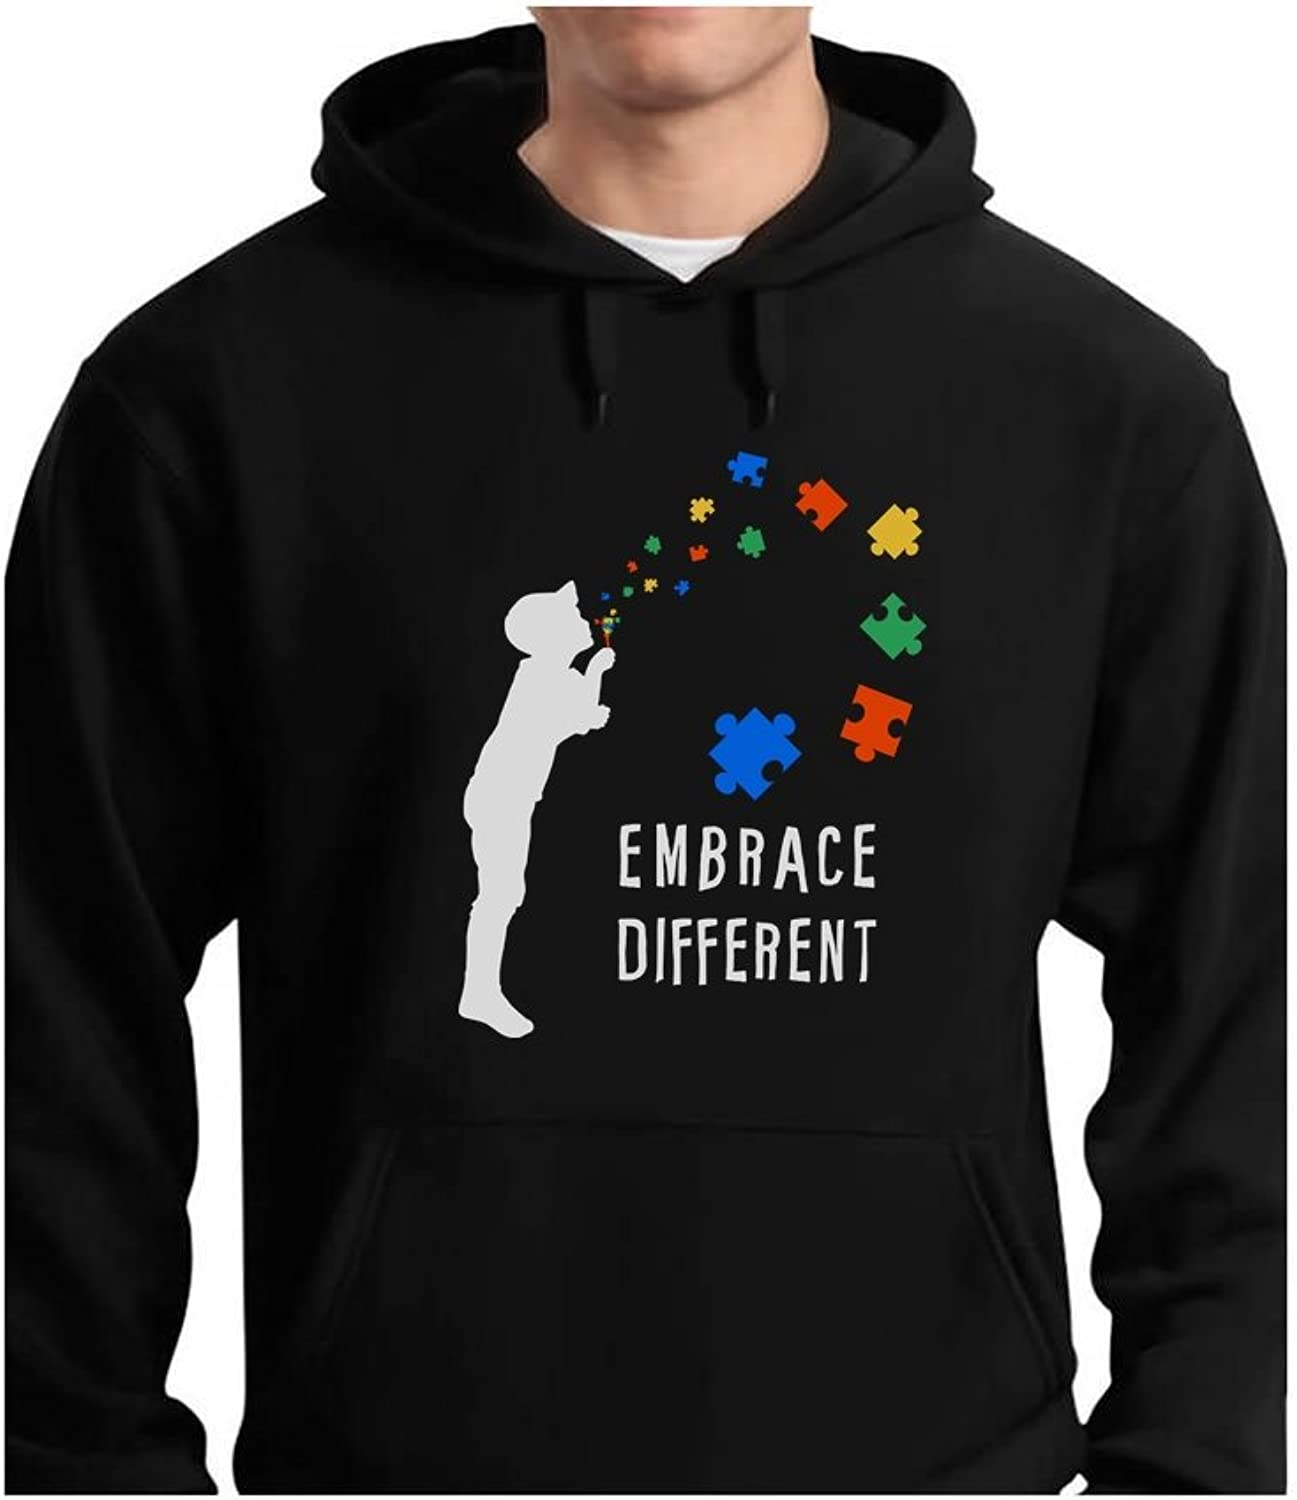 - Tstars - Embrace Different Different Different - Autism Awareness Hoodie d4ee6a